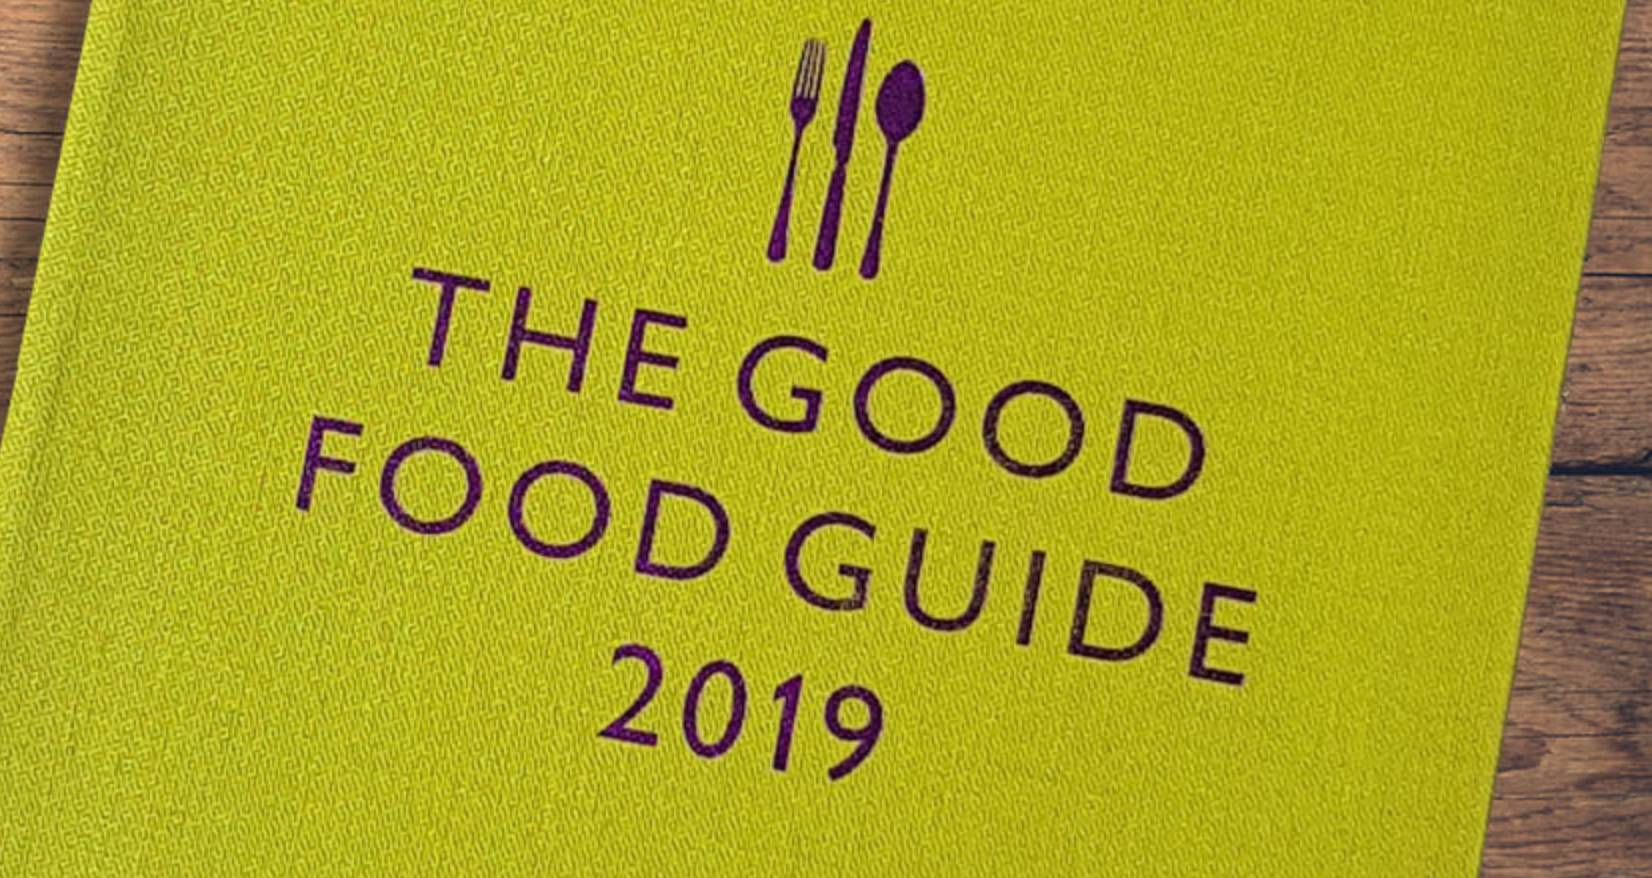 Good Food Guide 2019 cover